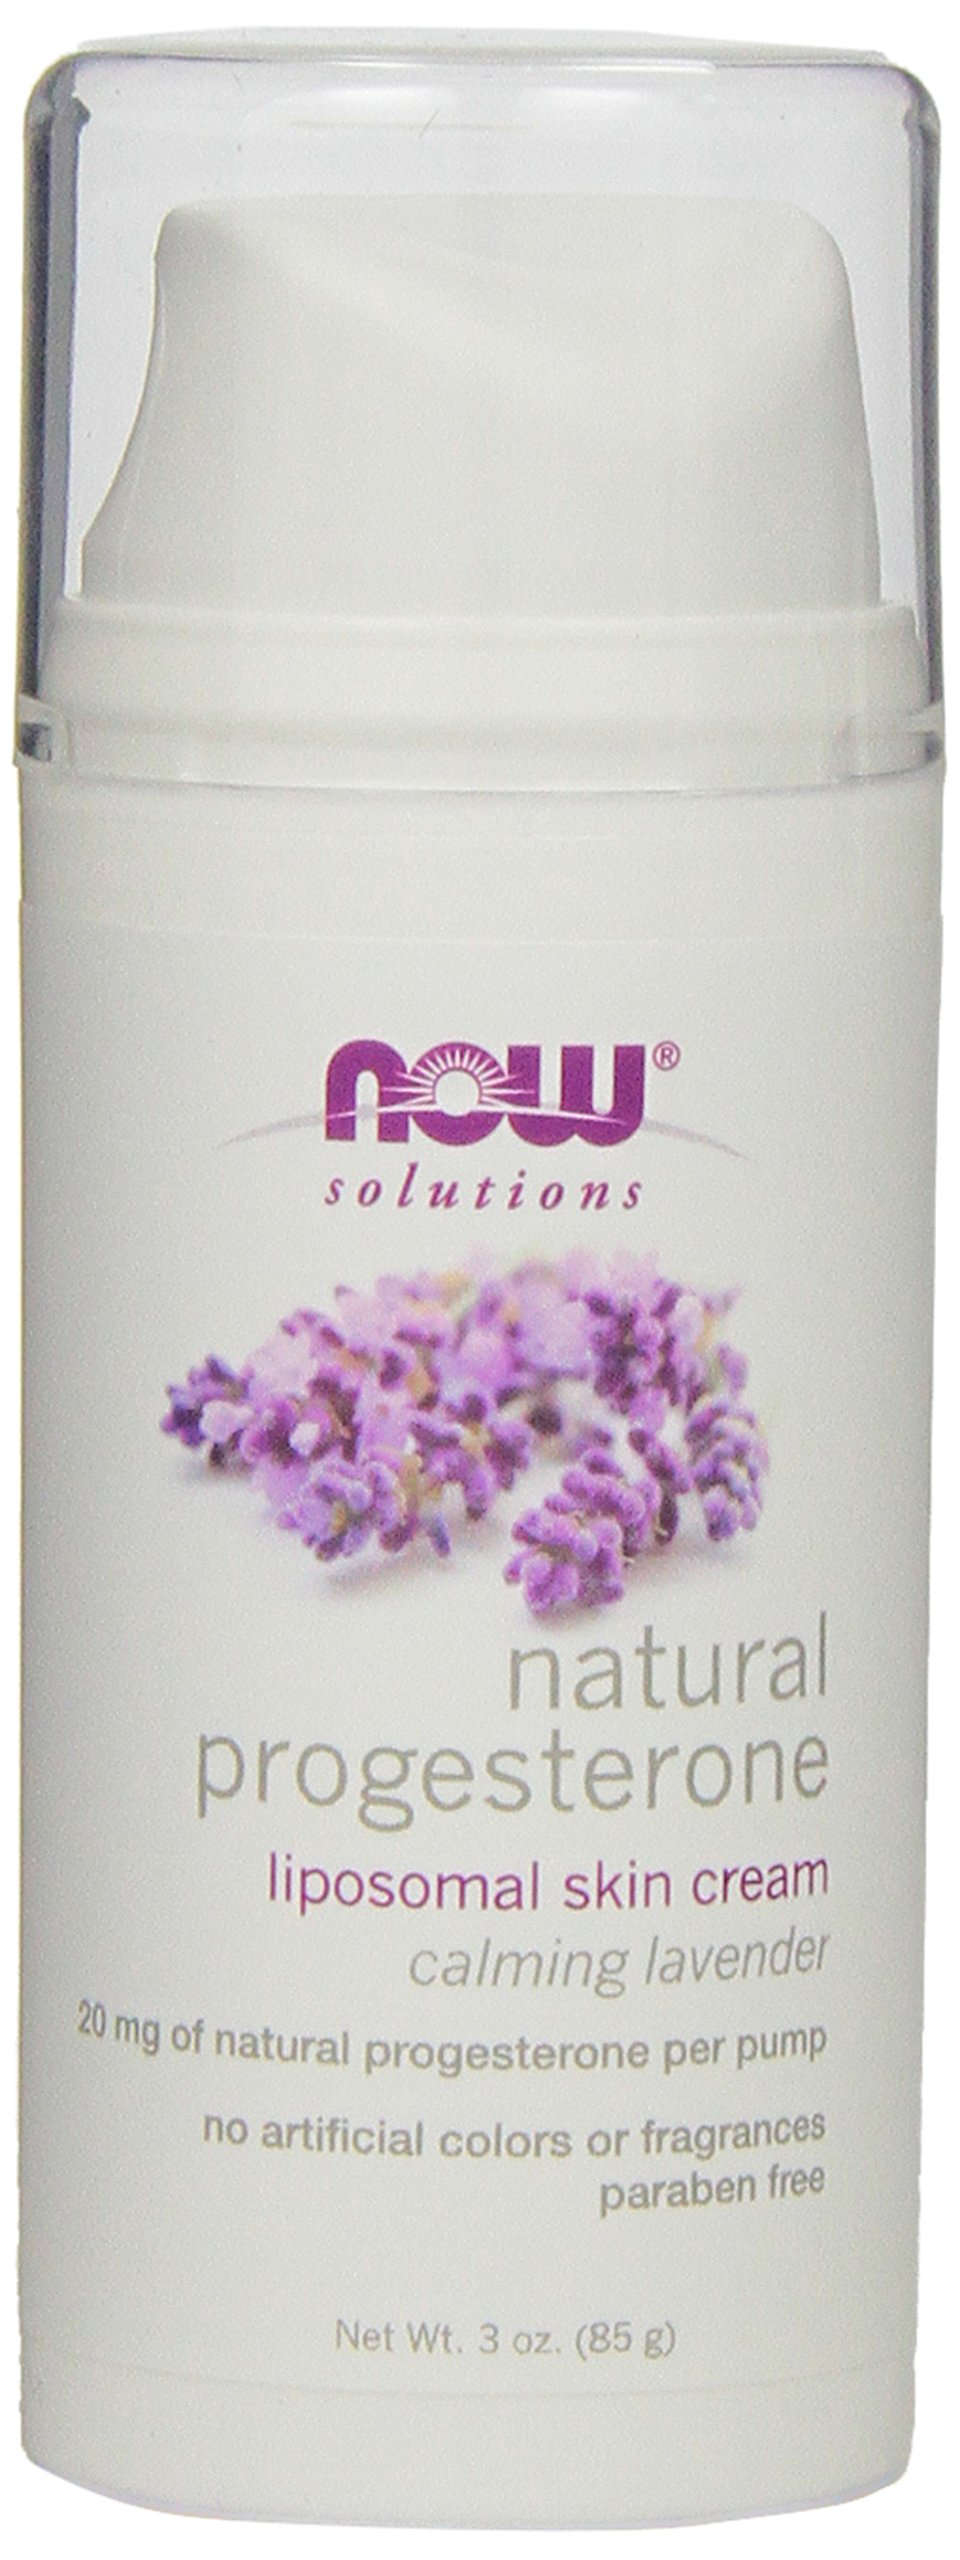 NOW Natural Progesterone Liposomal Skin Cream with Lavender,3-Ounce